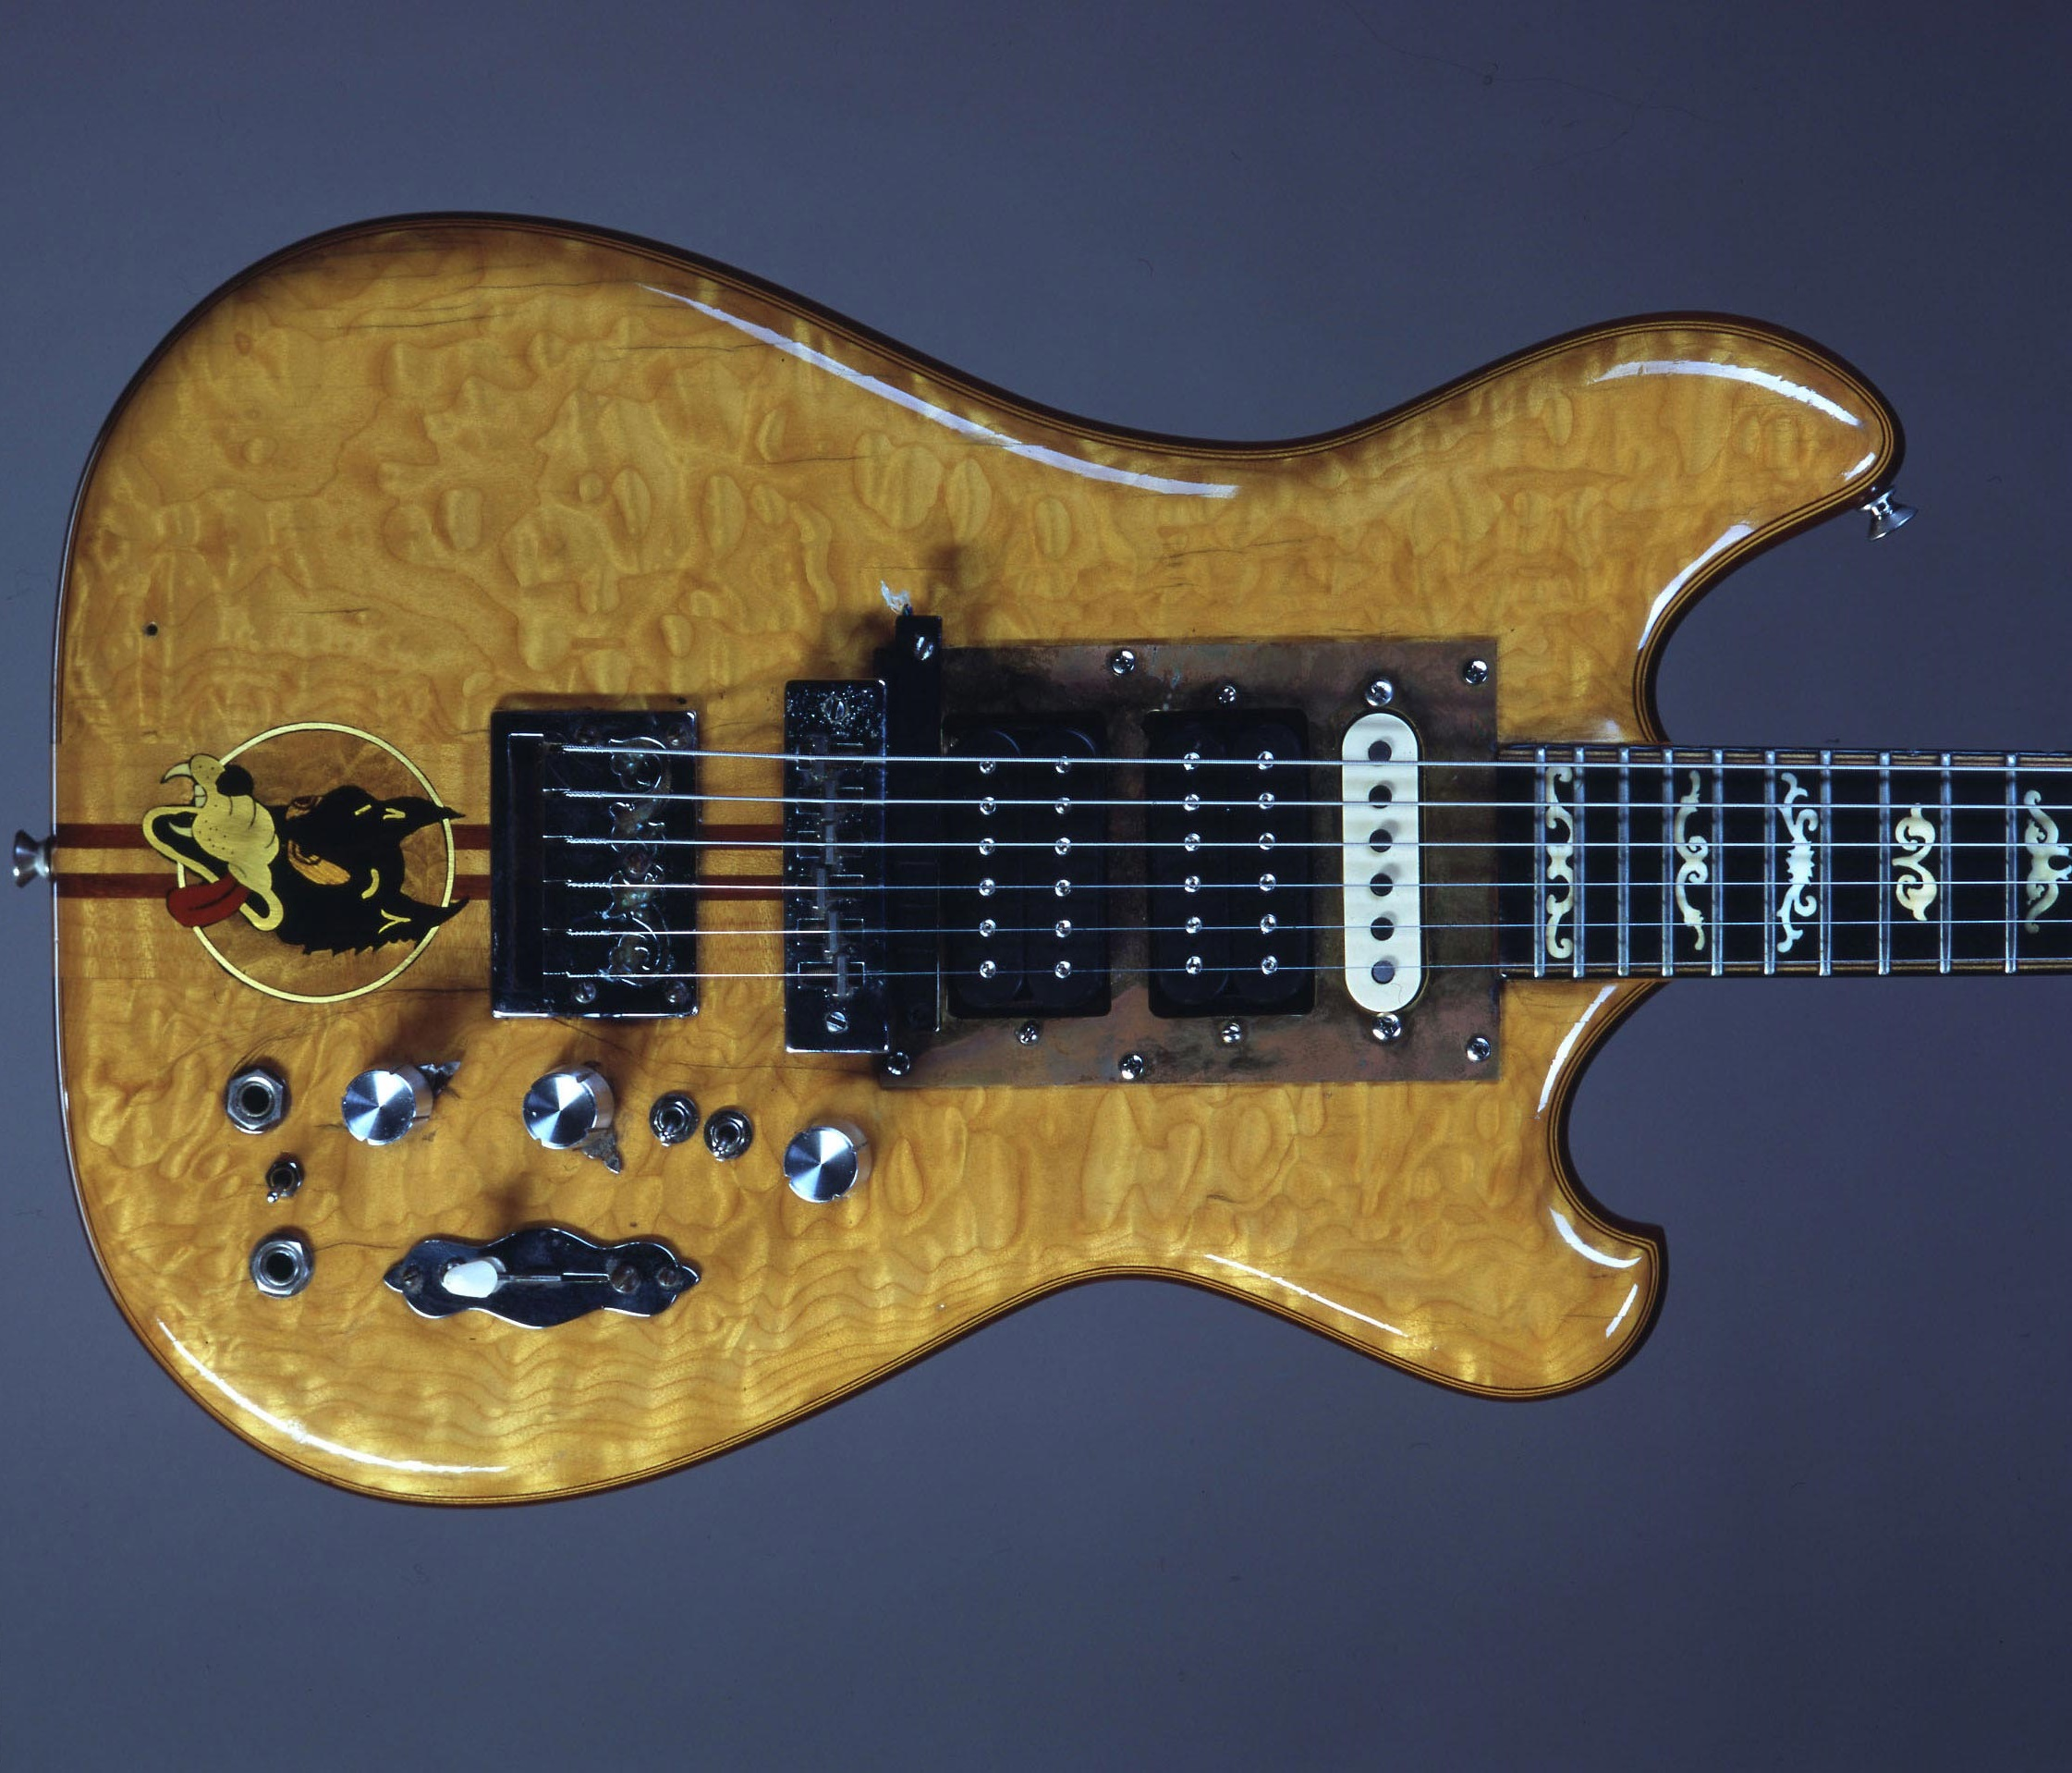 jerry garcia 39 s wolf guitar sells for 1 9 million proceeds go to southern poverty law center. Black Bedroom Furniture Sets. Home Design Ideas